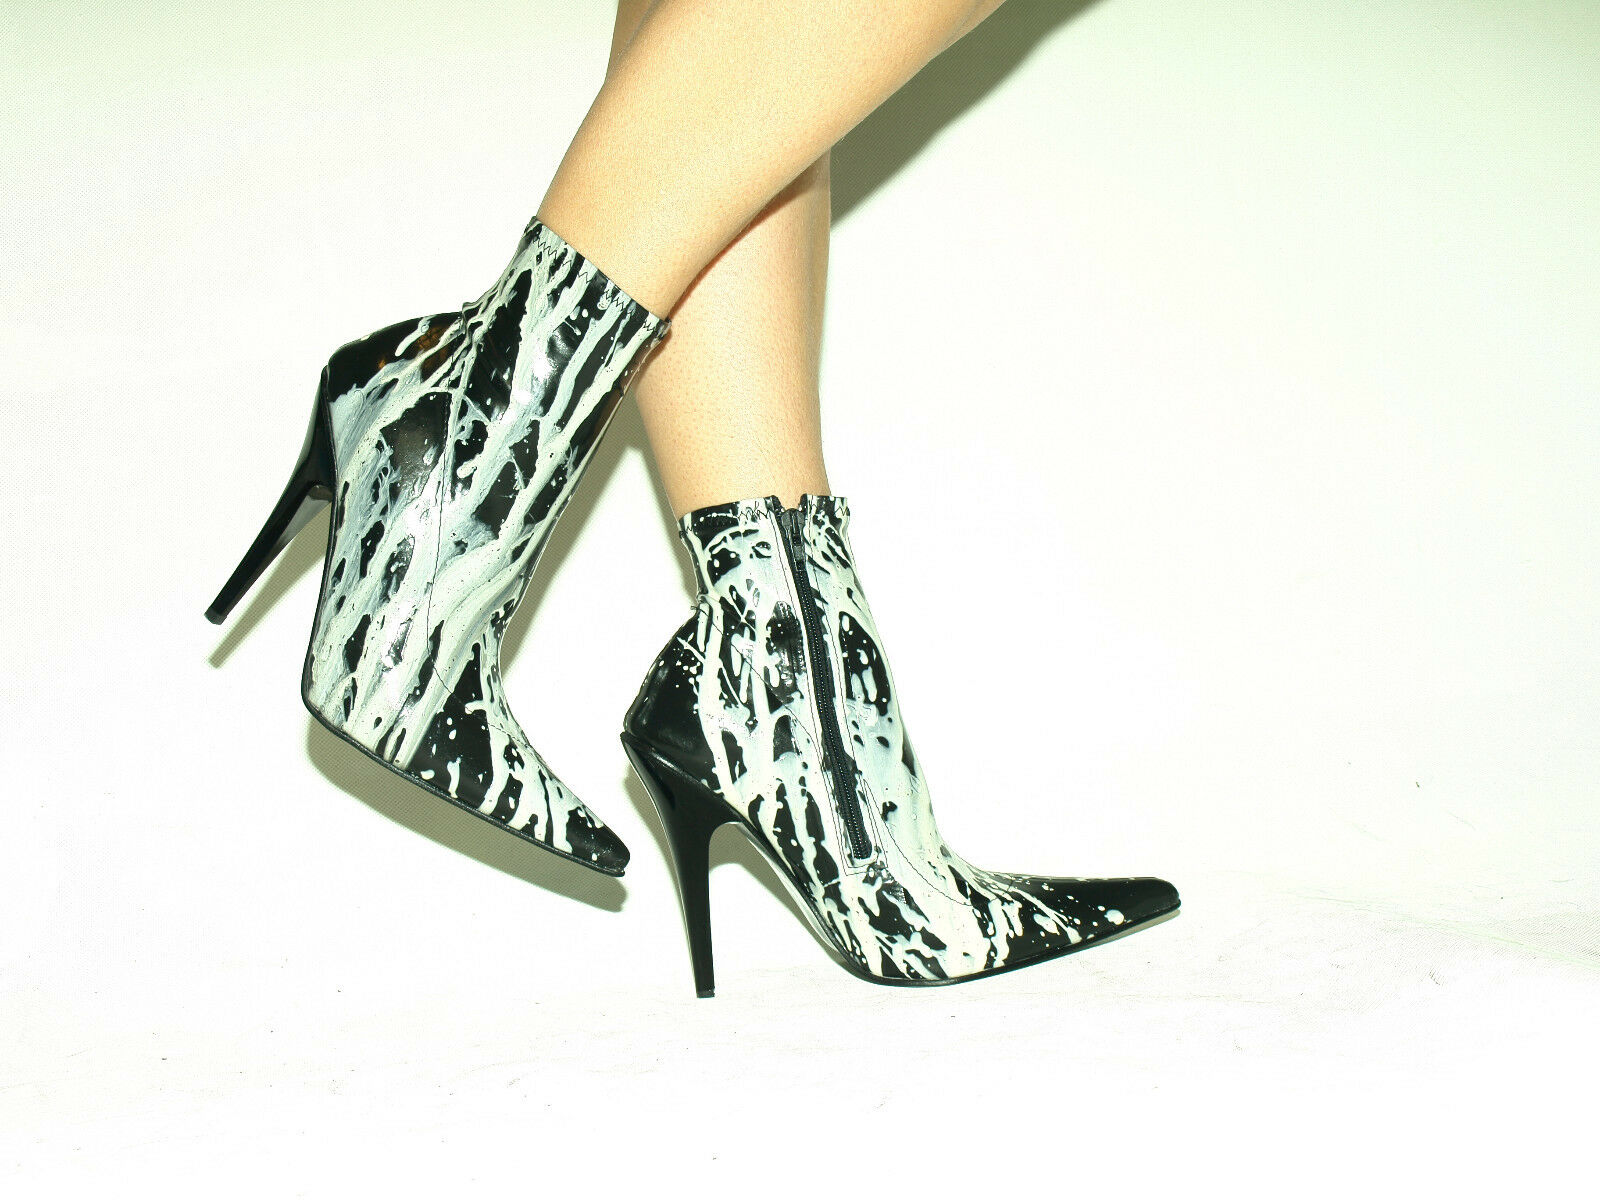 BLACK-WHITE 100% LATEX RUBBER HIGHS BOOTS  SIZE 5-16 HEELS-5,5 -13cm- POLAND